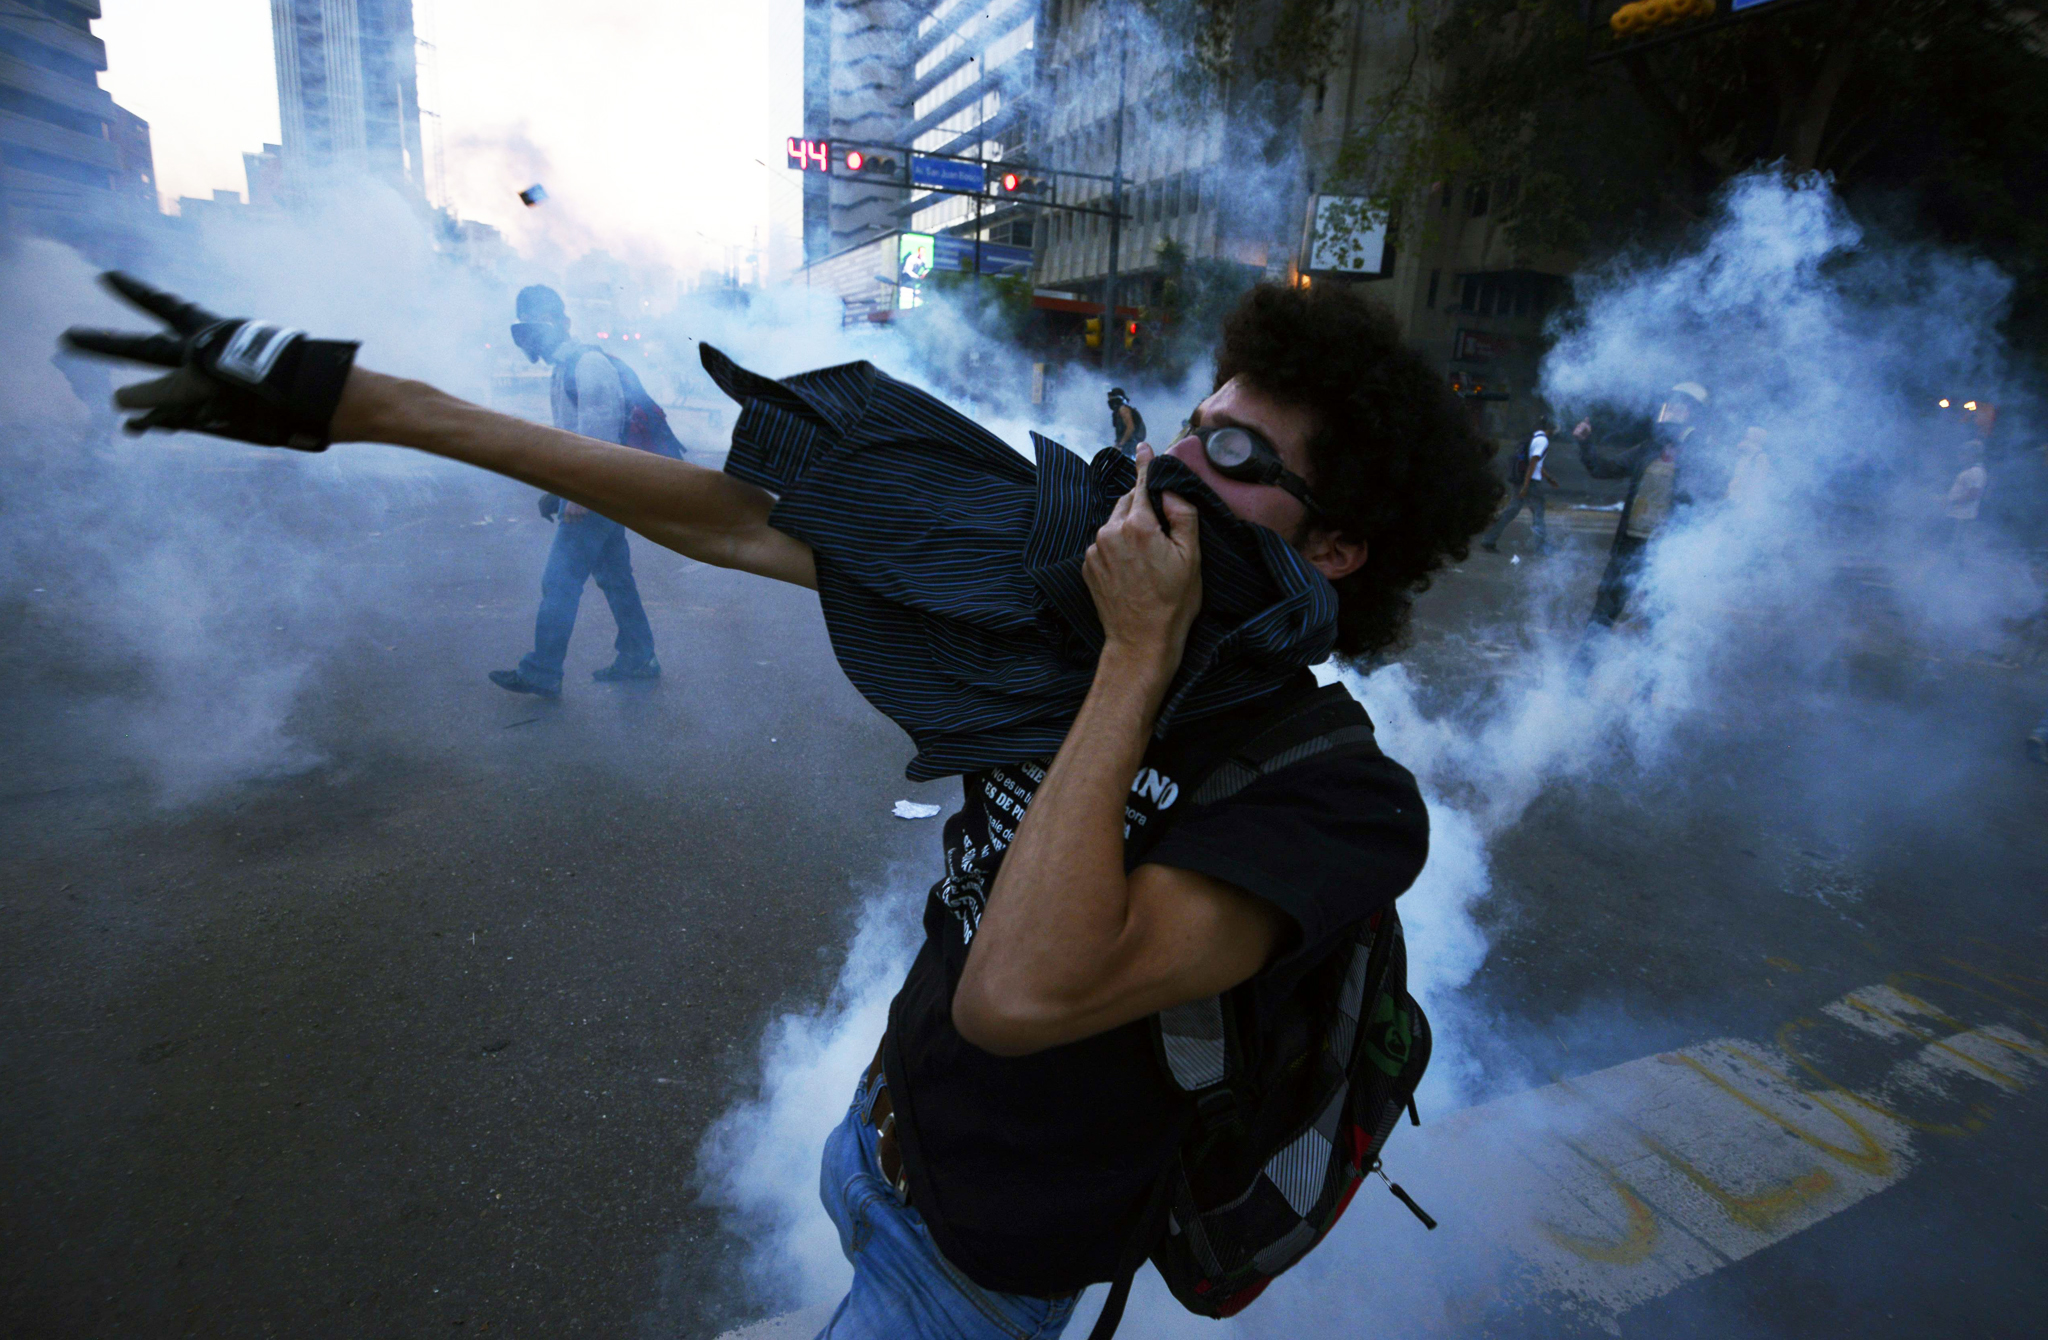 An opposition activist returns tear gas to riot police during a protest against the government of Venezuelan President Nicolas Maduro in Caracas. Venezuela marked the anniversary of Chavez's death with a blend of solemn ceremonies, clashes and a break in relations with Panama over protests dogging his successor's presidency.